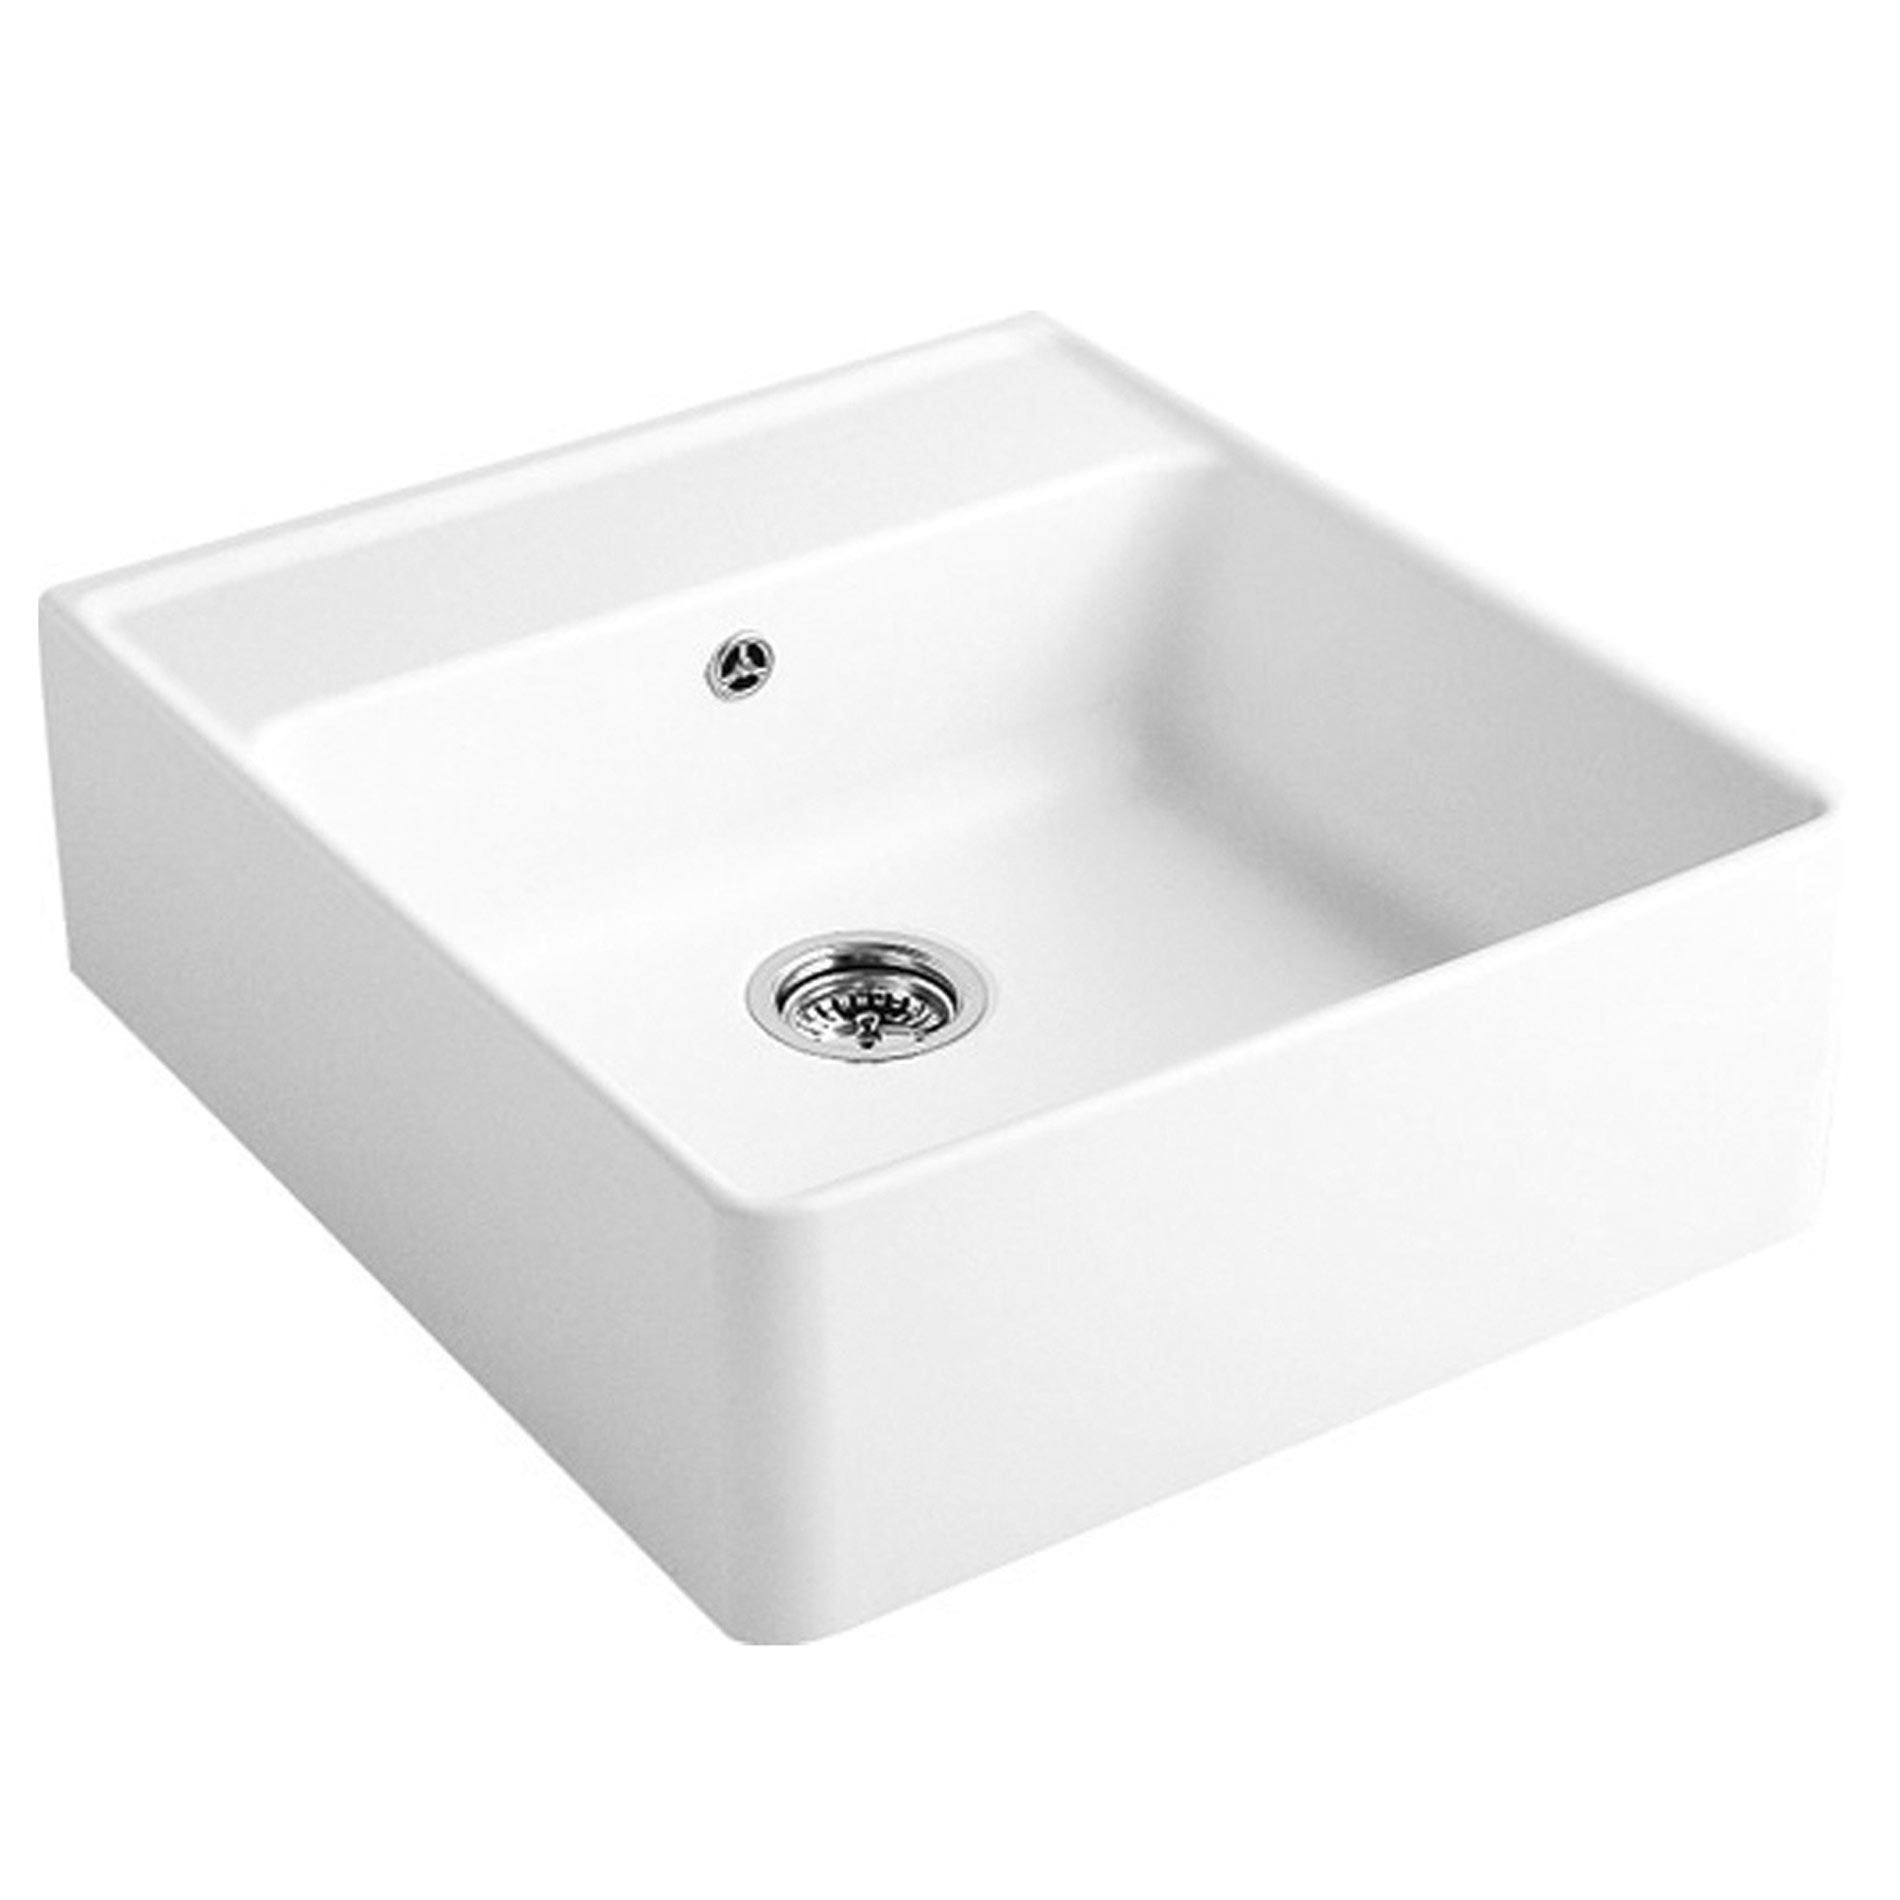 ... & Boch: Butler 60 1.0 bowl Ceramic Sink - Kitchen Sinks & Taps